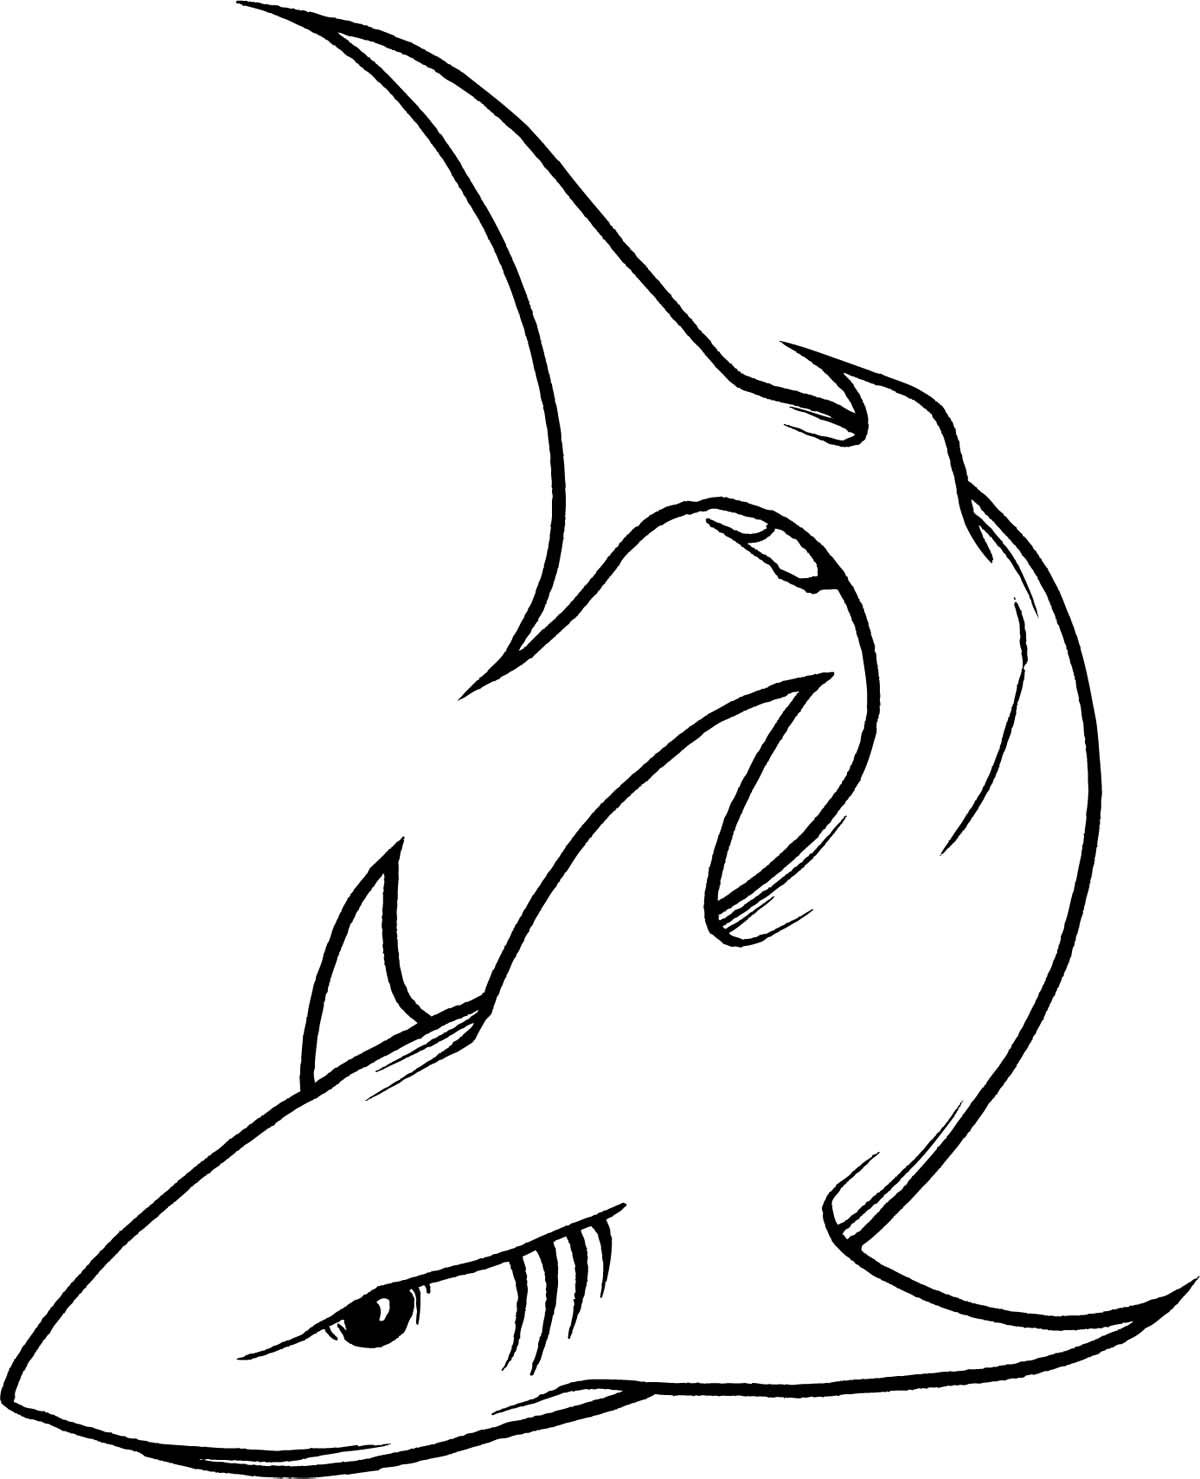 hammerhead shark outline clipart panda free clipart images [ 1200 x 1479 Pixel ]